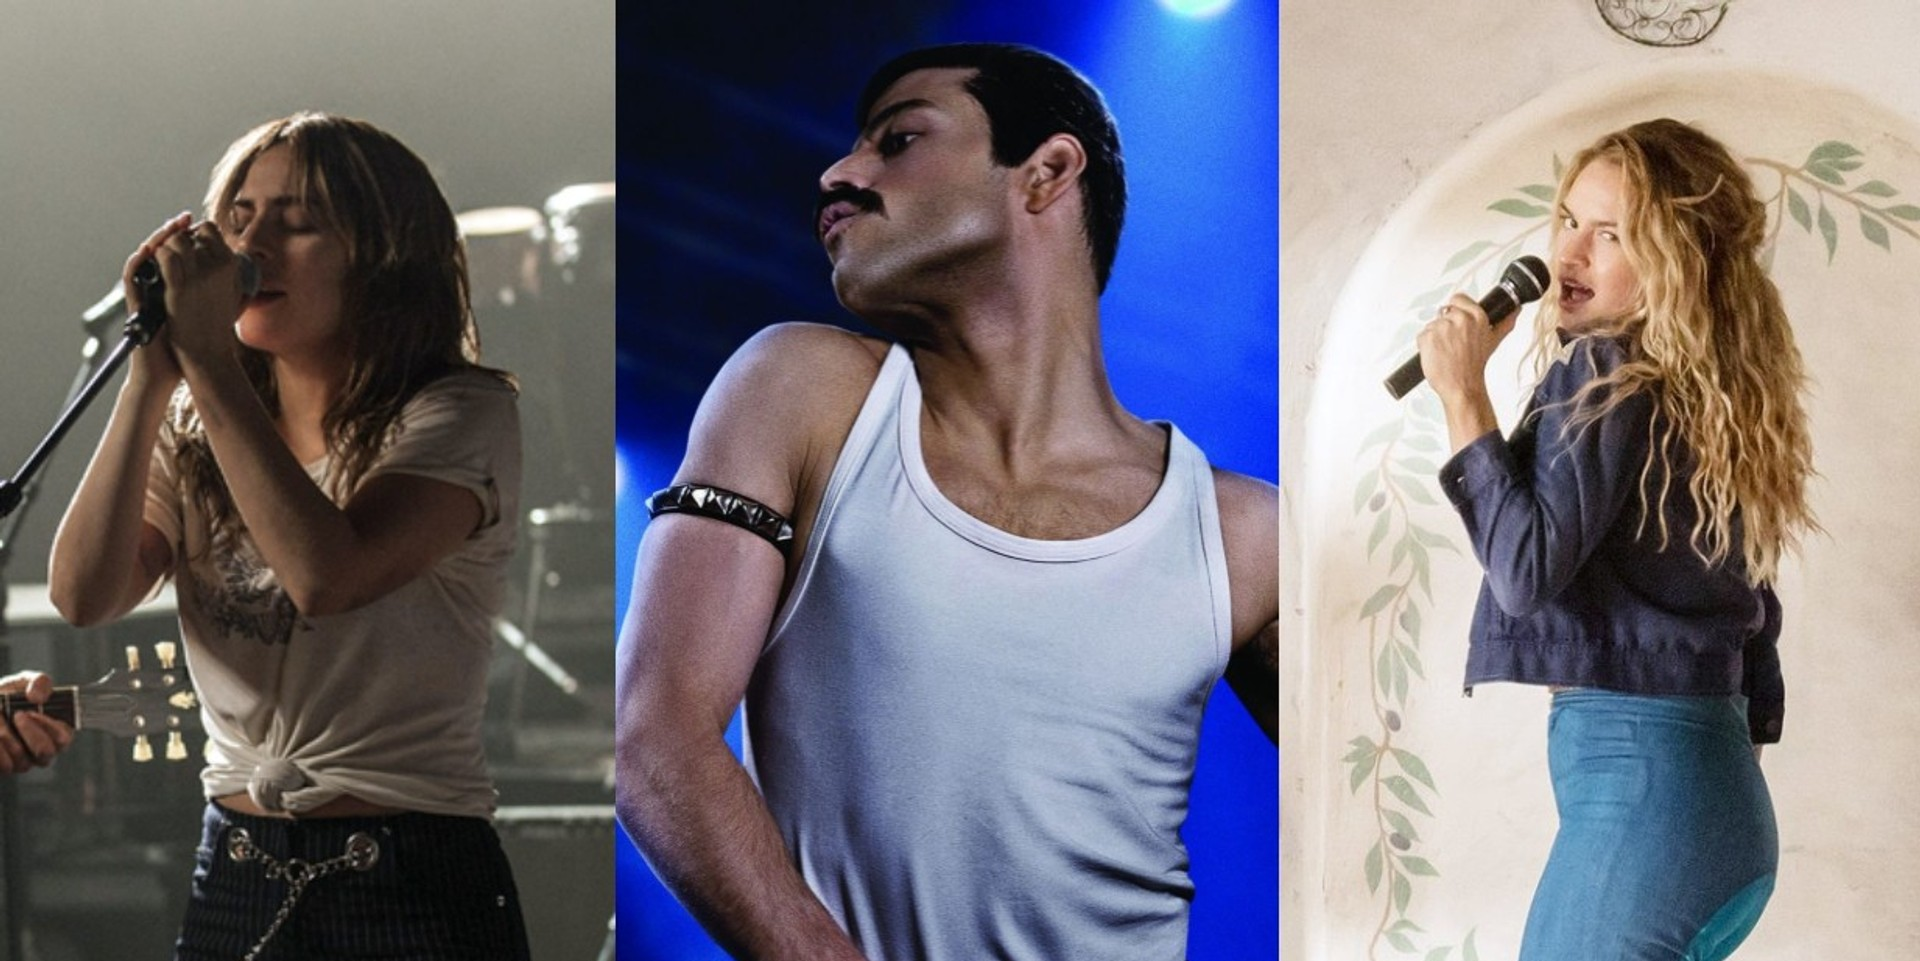 The best music movies to catch this year